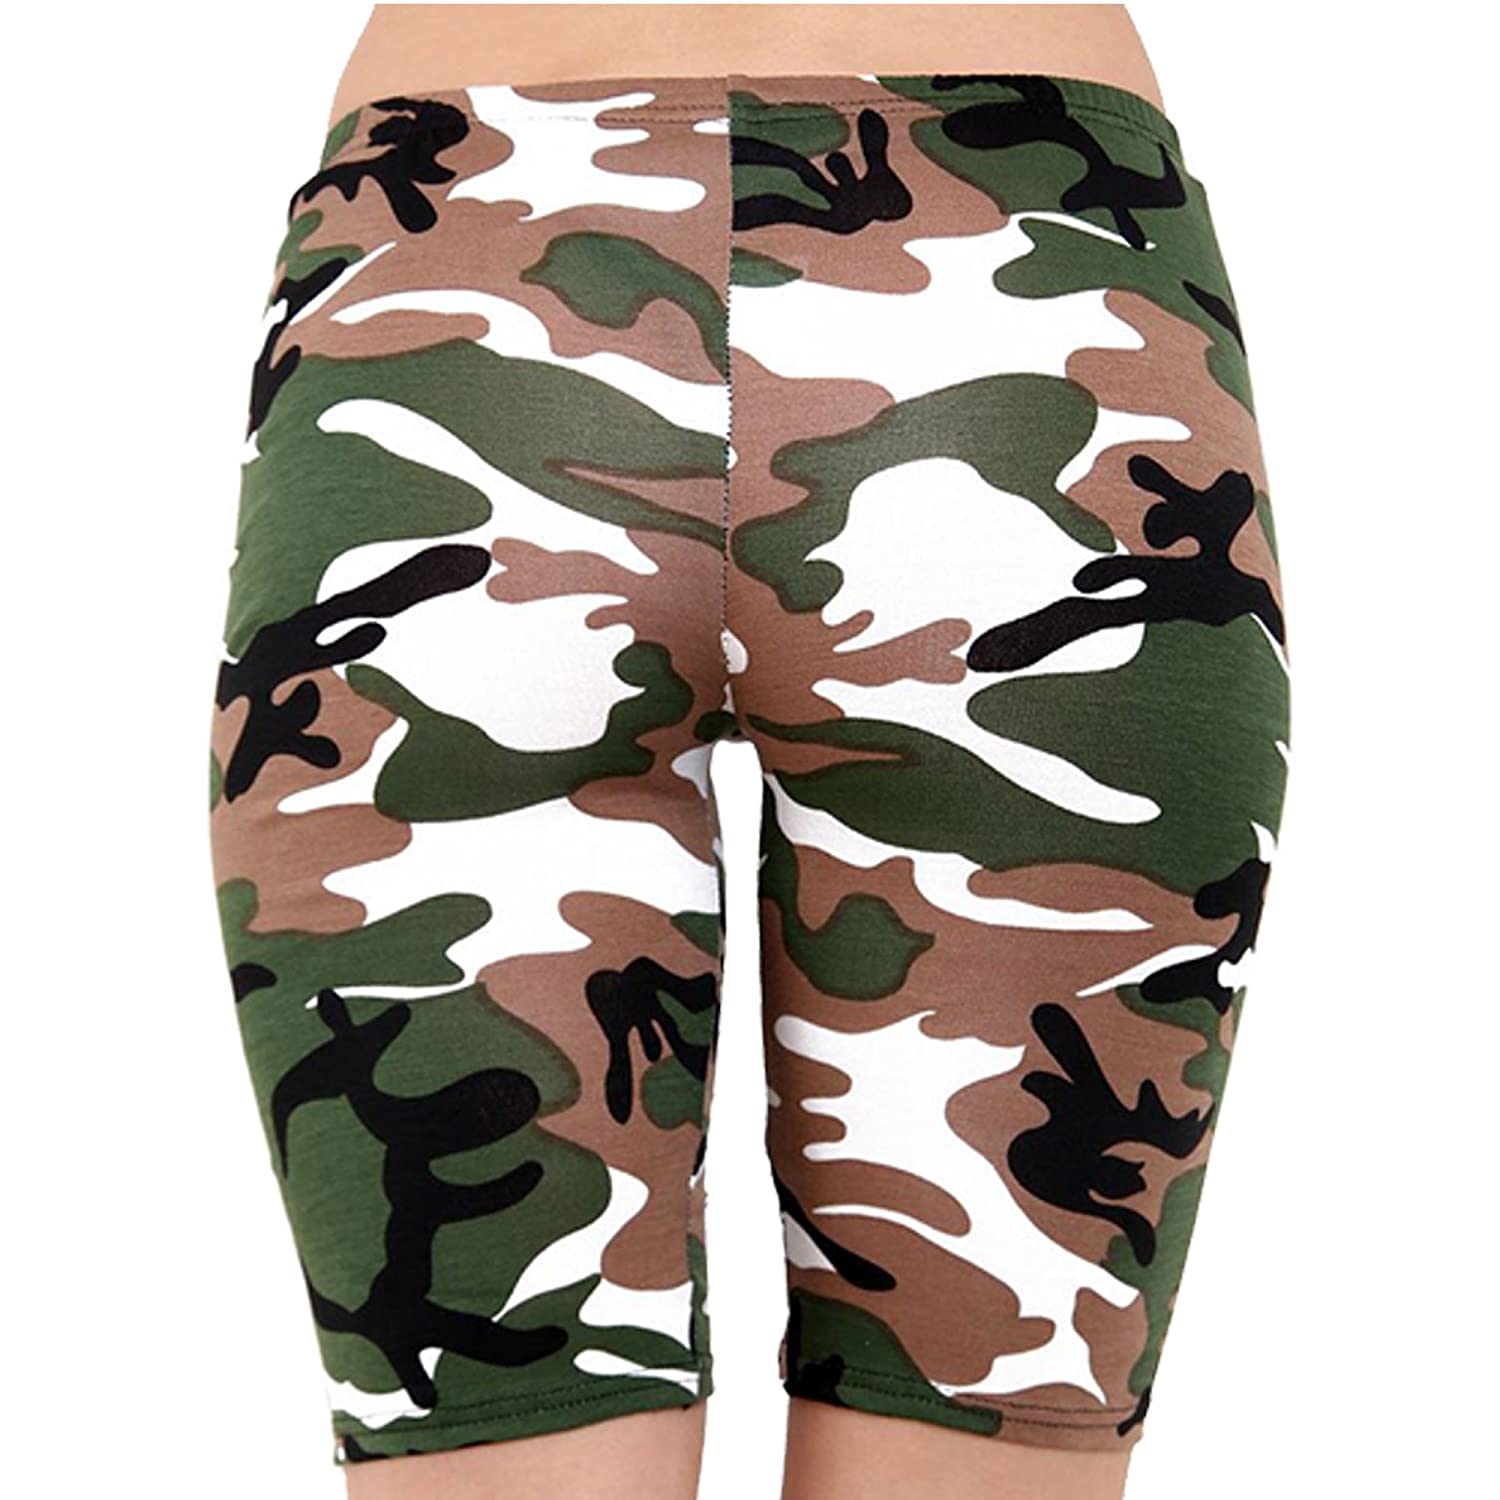 b5d4f3b9dfd6b Candid Styles Women's Ladies Army Leopard Skull Printed Cycling Hot Jersey  Stretchy Pants Shorts: Amazon.co.uk: Clothing